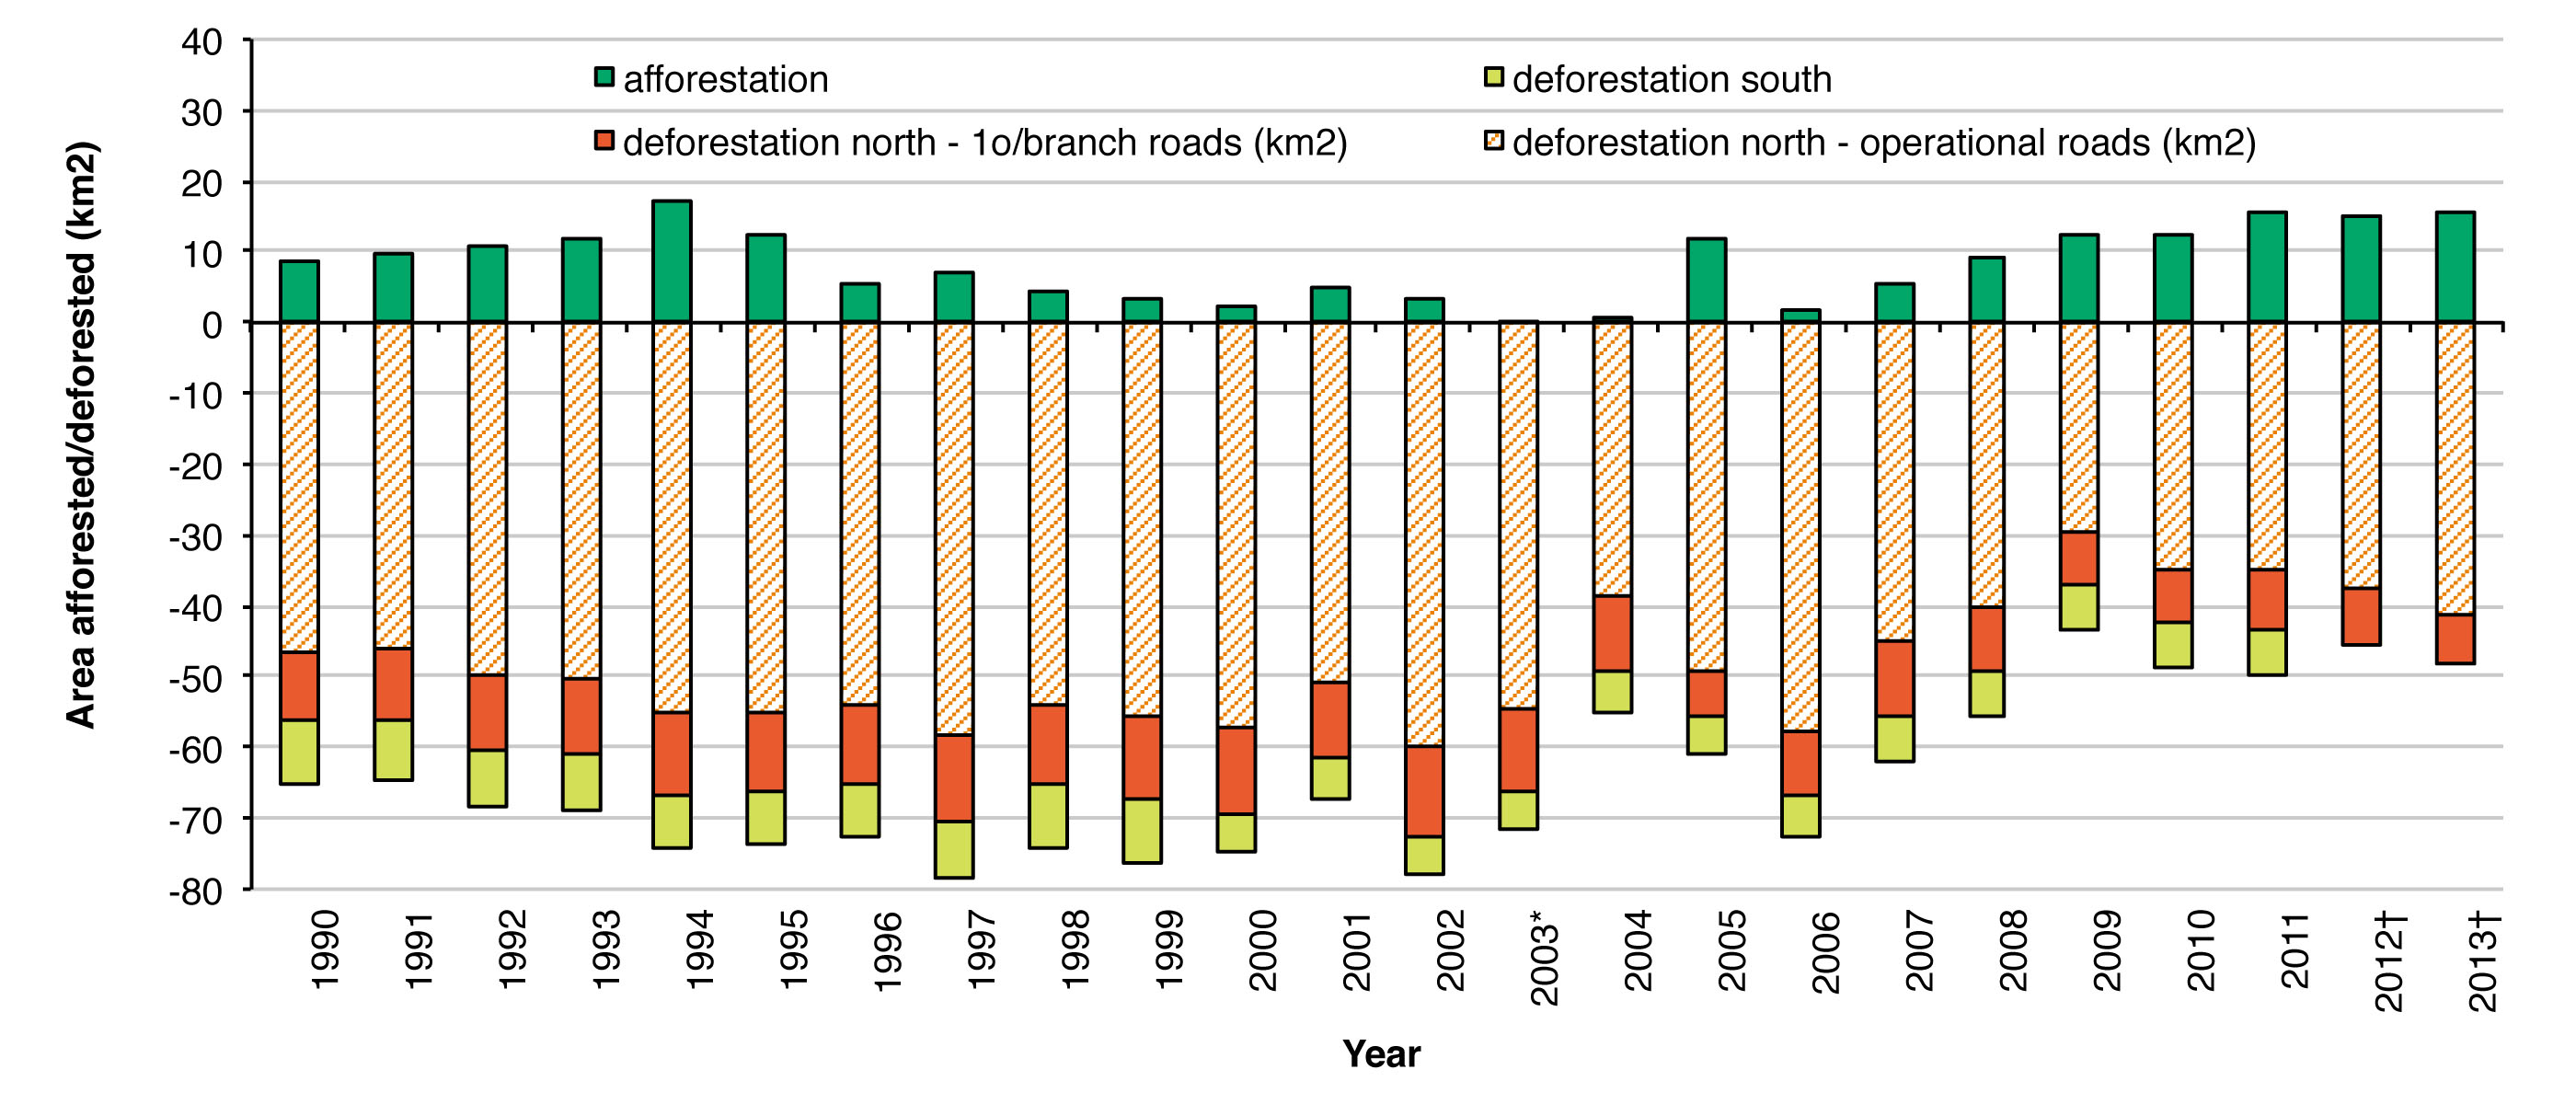 Figure 1. Trends in areas of afforestation (positive values) and deforestation (negative values) 1990-2013 (*afforestation area missing for 2003, † area of deforestation missing for southern Ontario 2012-2013).